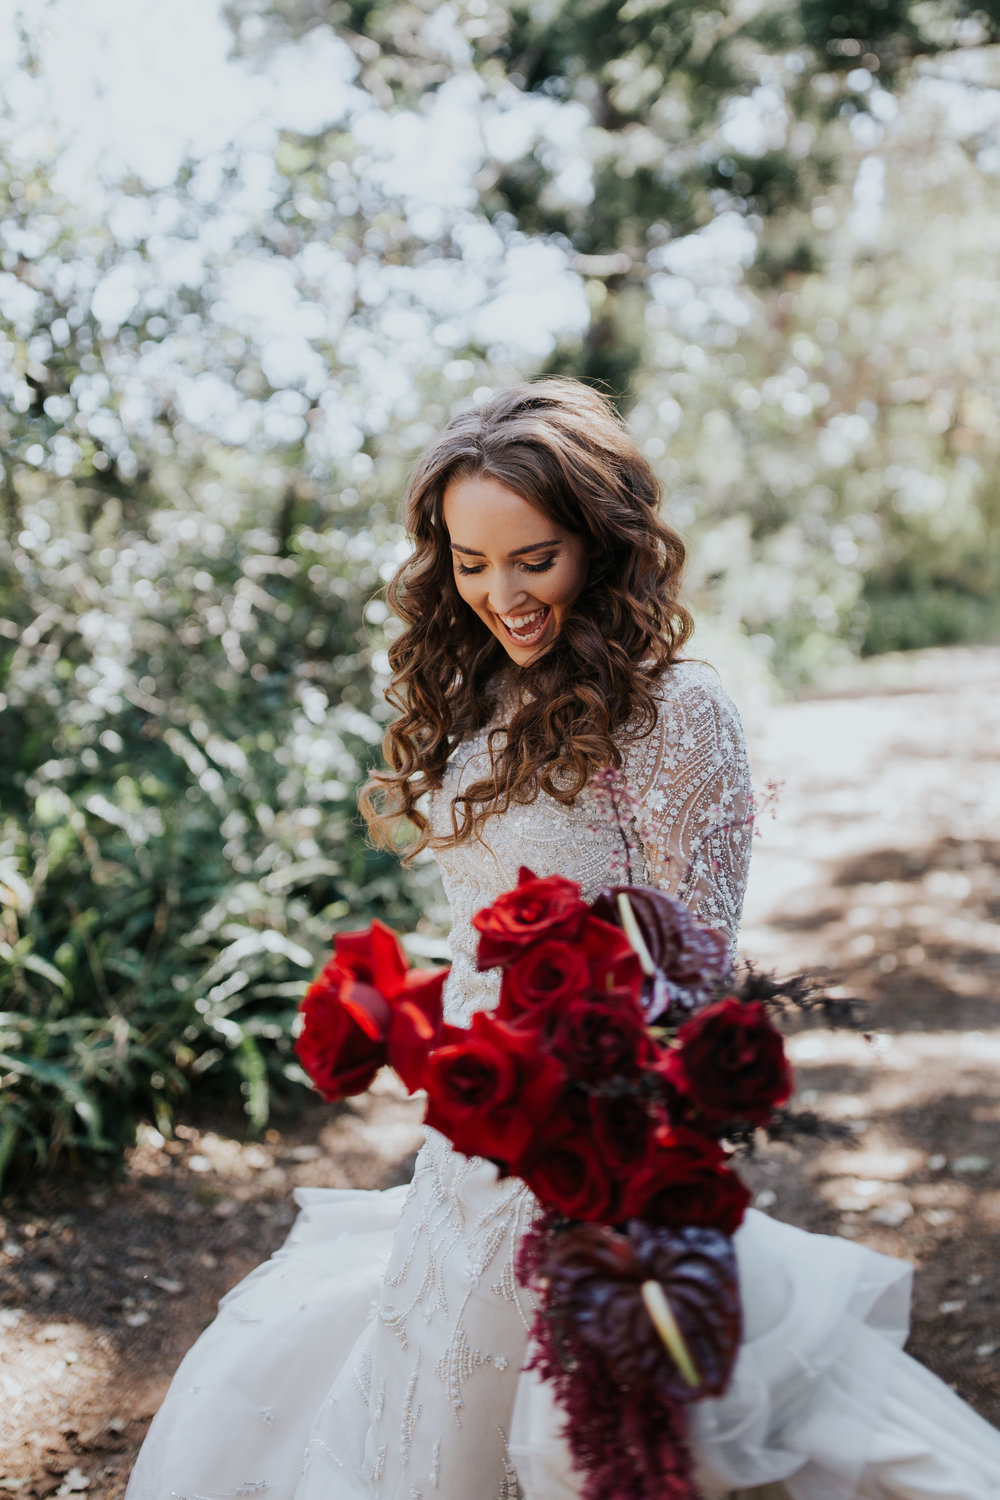 Bloodwood Botanica | Maleny red wedding flowers